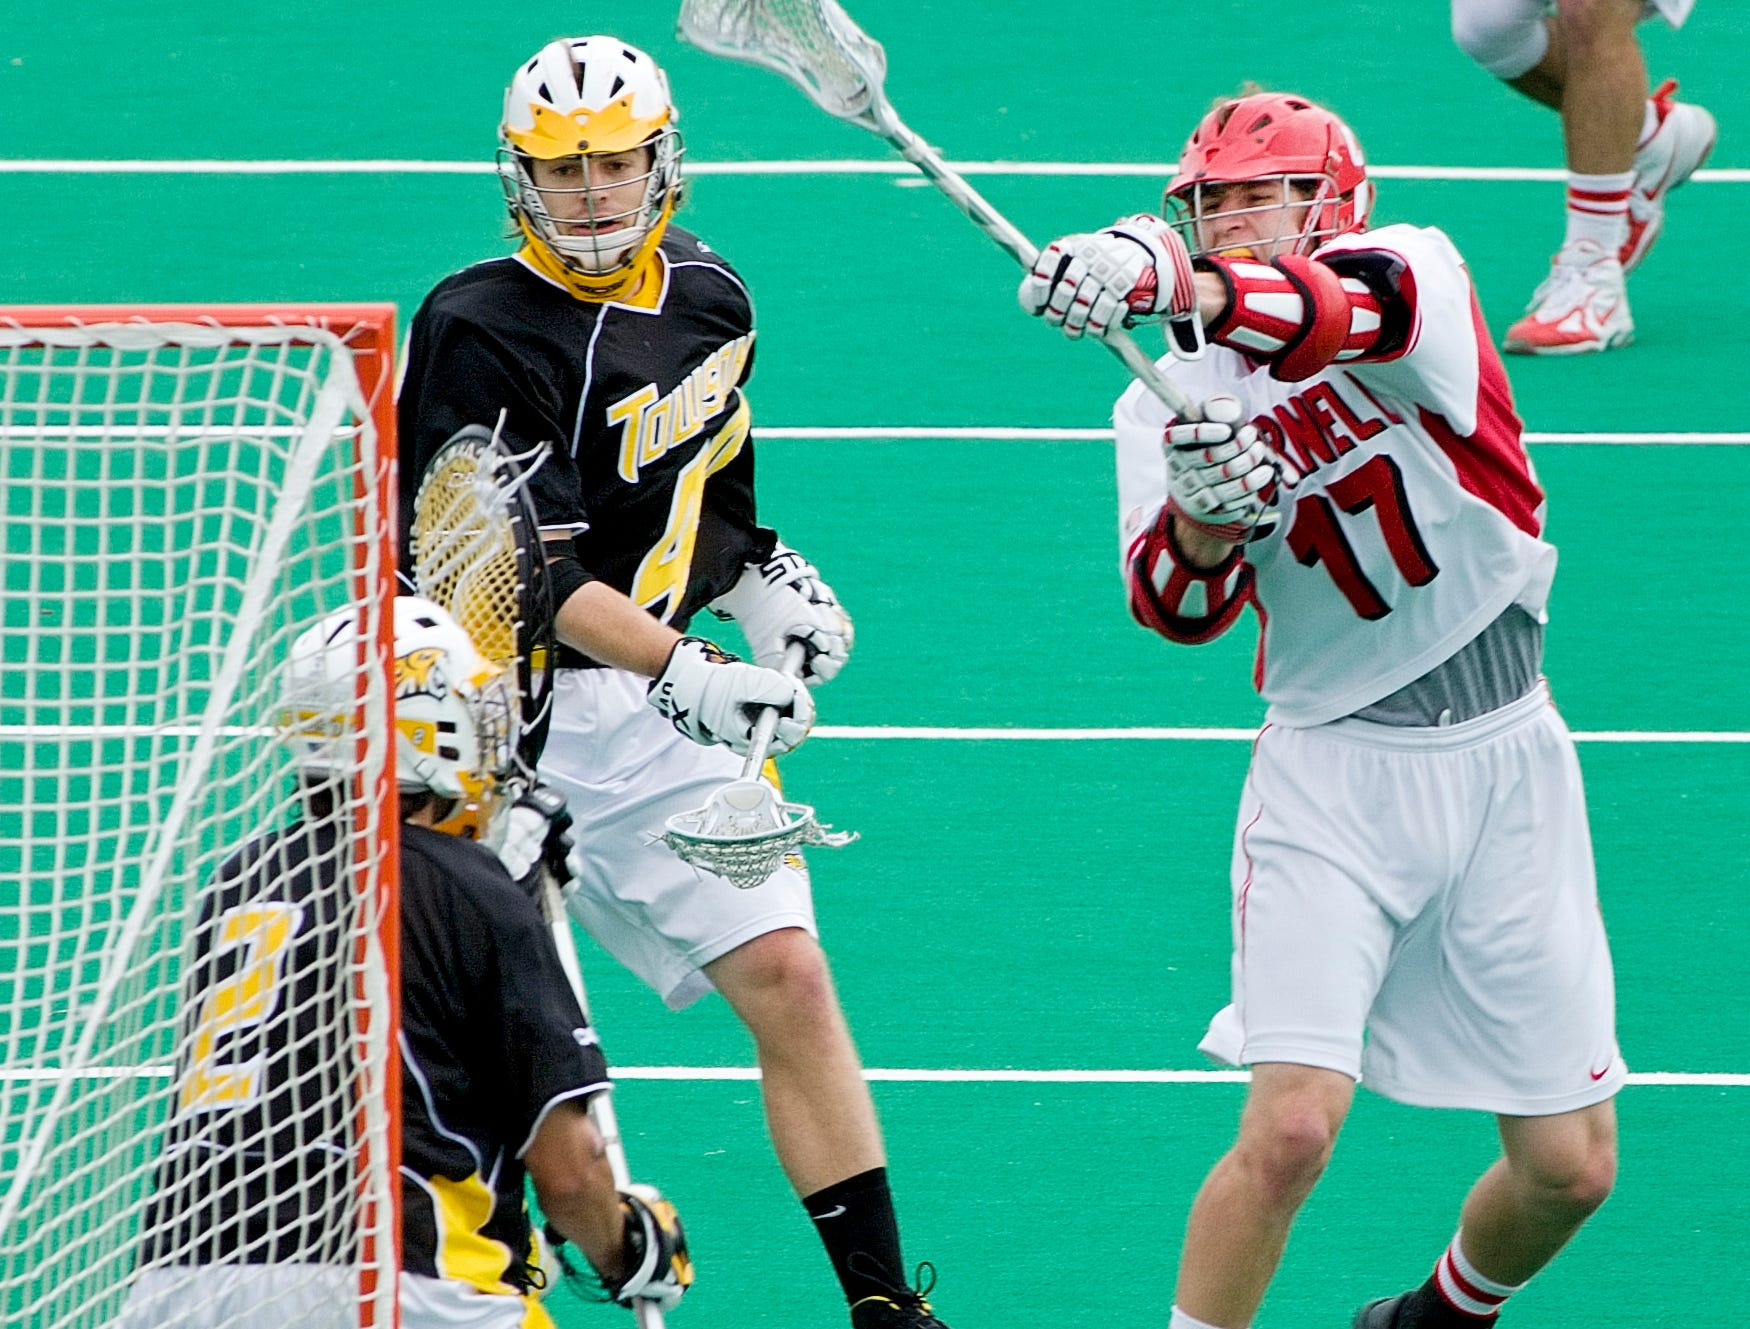 2007: Cornell's David Mitchell, 17, shoots a goal on Towson's Matt Antol in the first period of Saturday's NCAA Div. 1 Championship first round game at Schoellkopf Field.